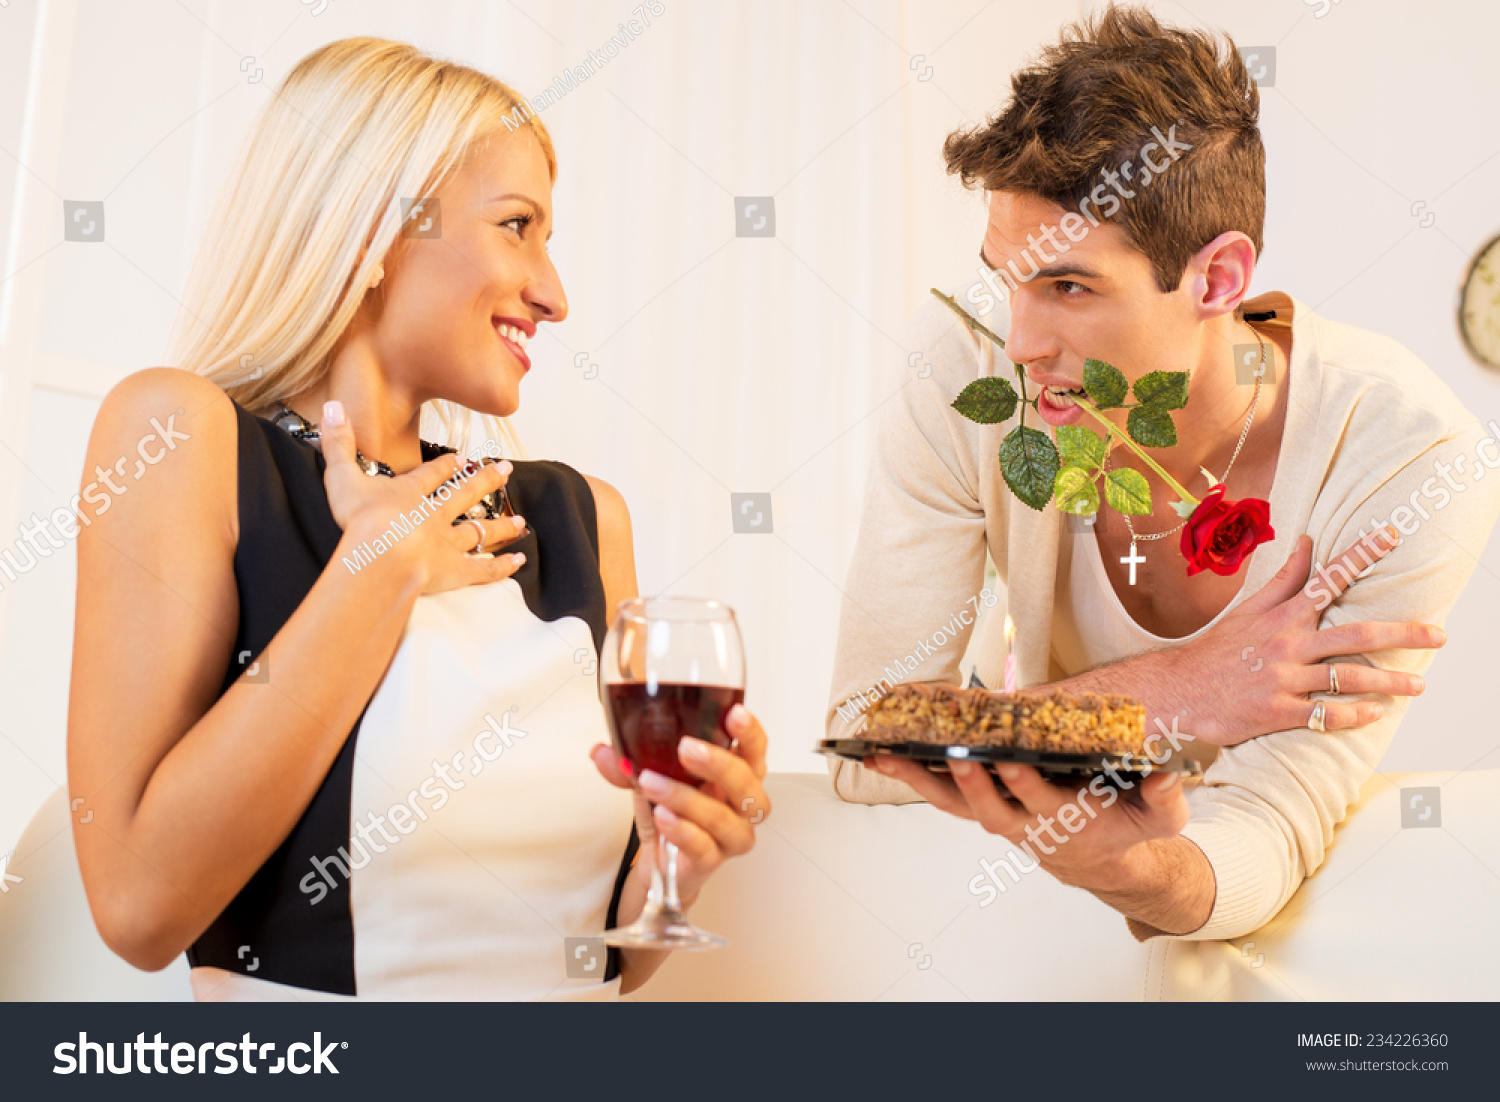 Young Man Rose His Mouth Gives Stock Photo 234226360 Shutterstock